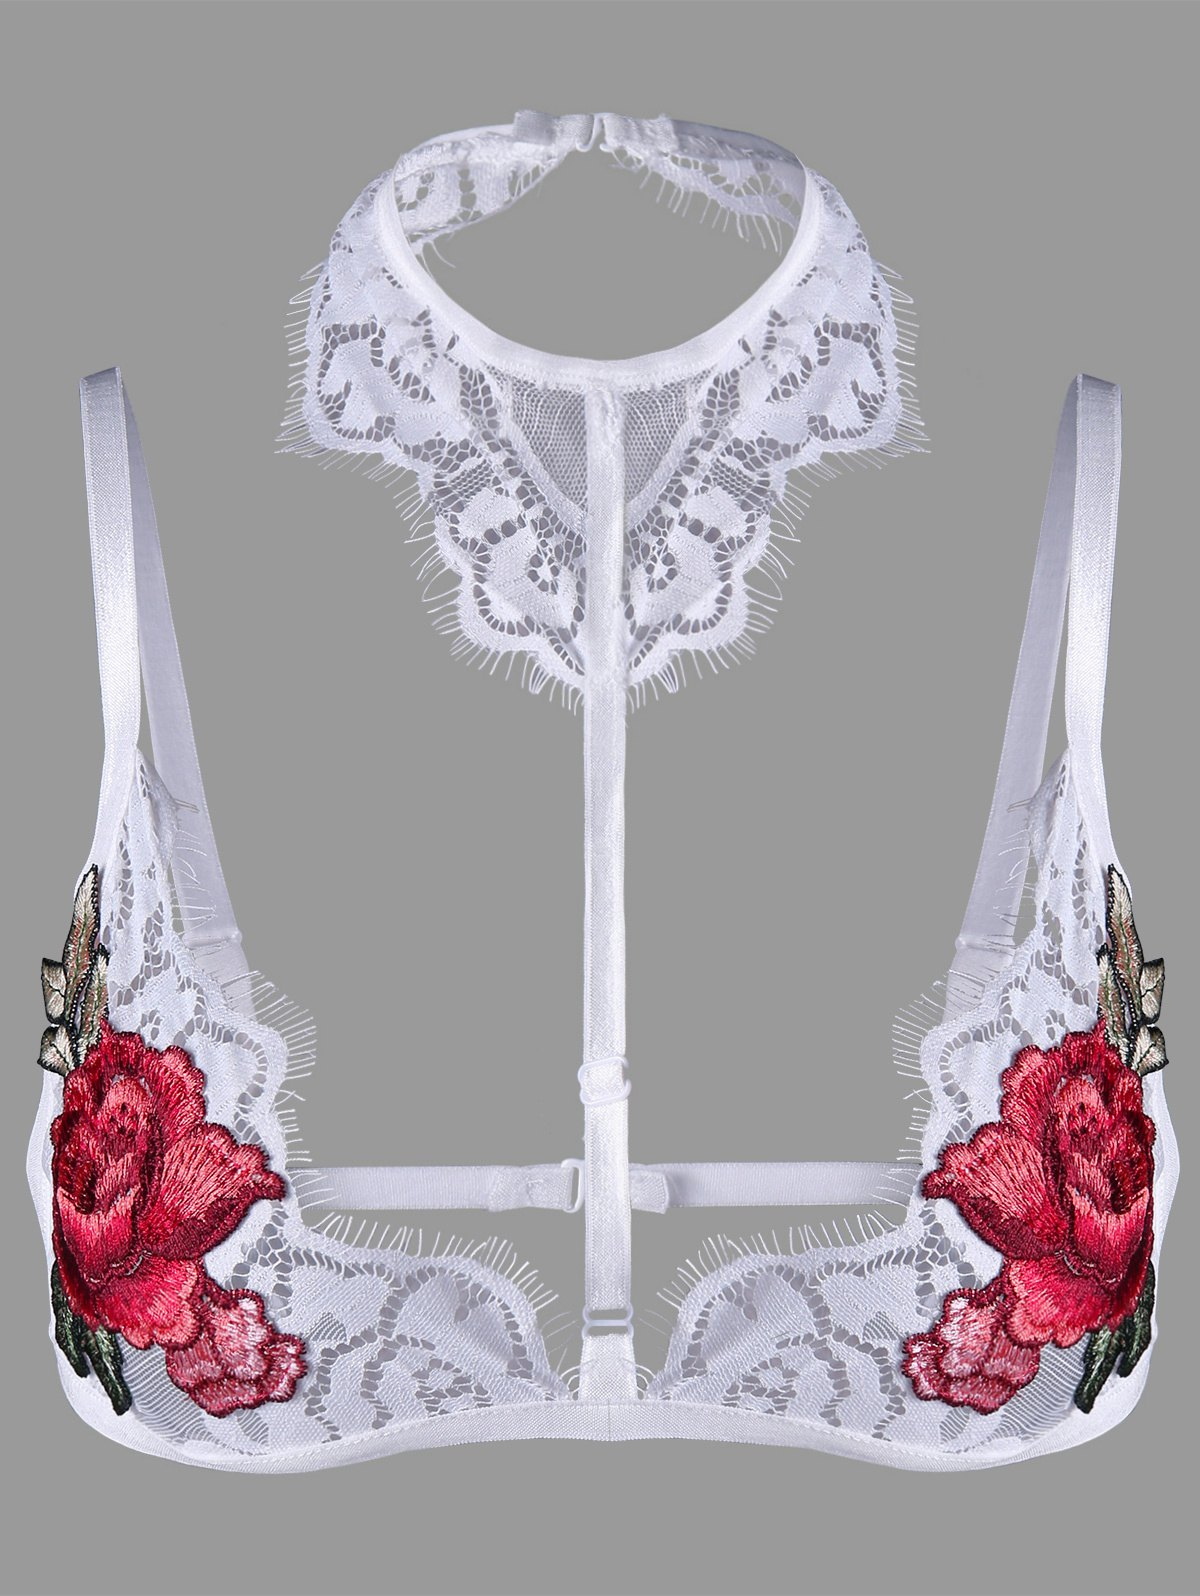 Lace Flower Embroidered Choker Bralette a history of western music 4e ise paper